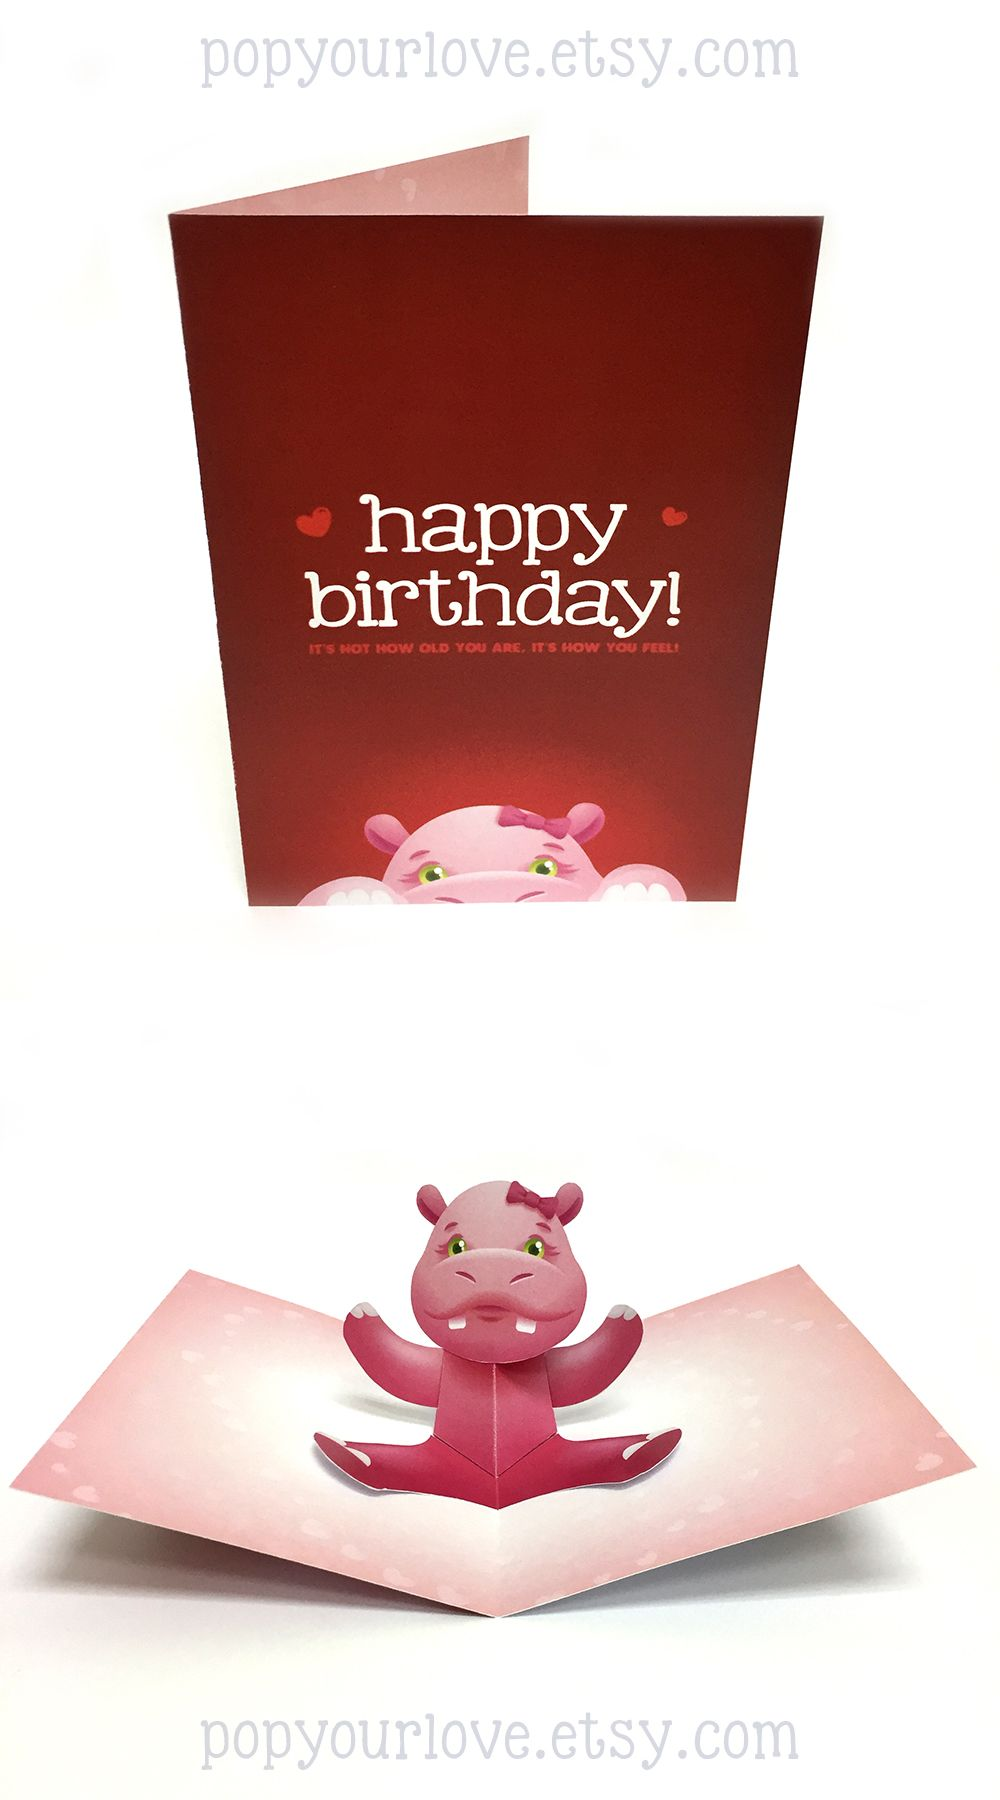 Hippo Card Birthday Card Birthday Pop Up Card Animal Pop Up